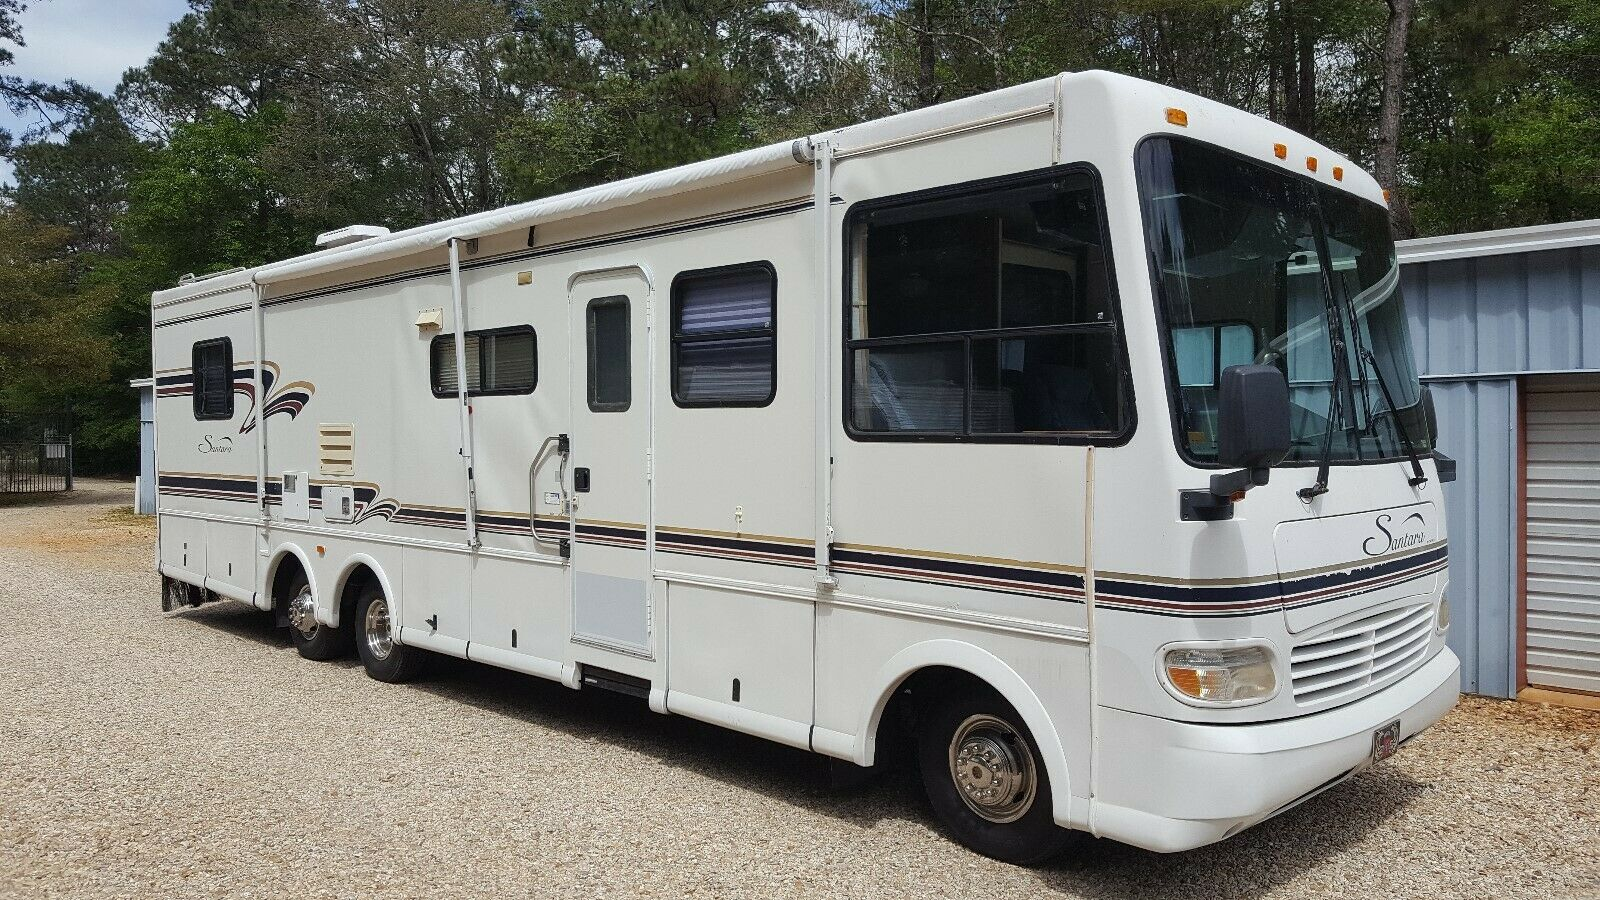 excellent shape 1997 Coachmen Santara Class A camper for sale